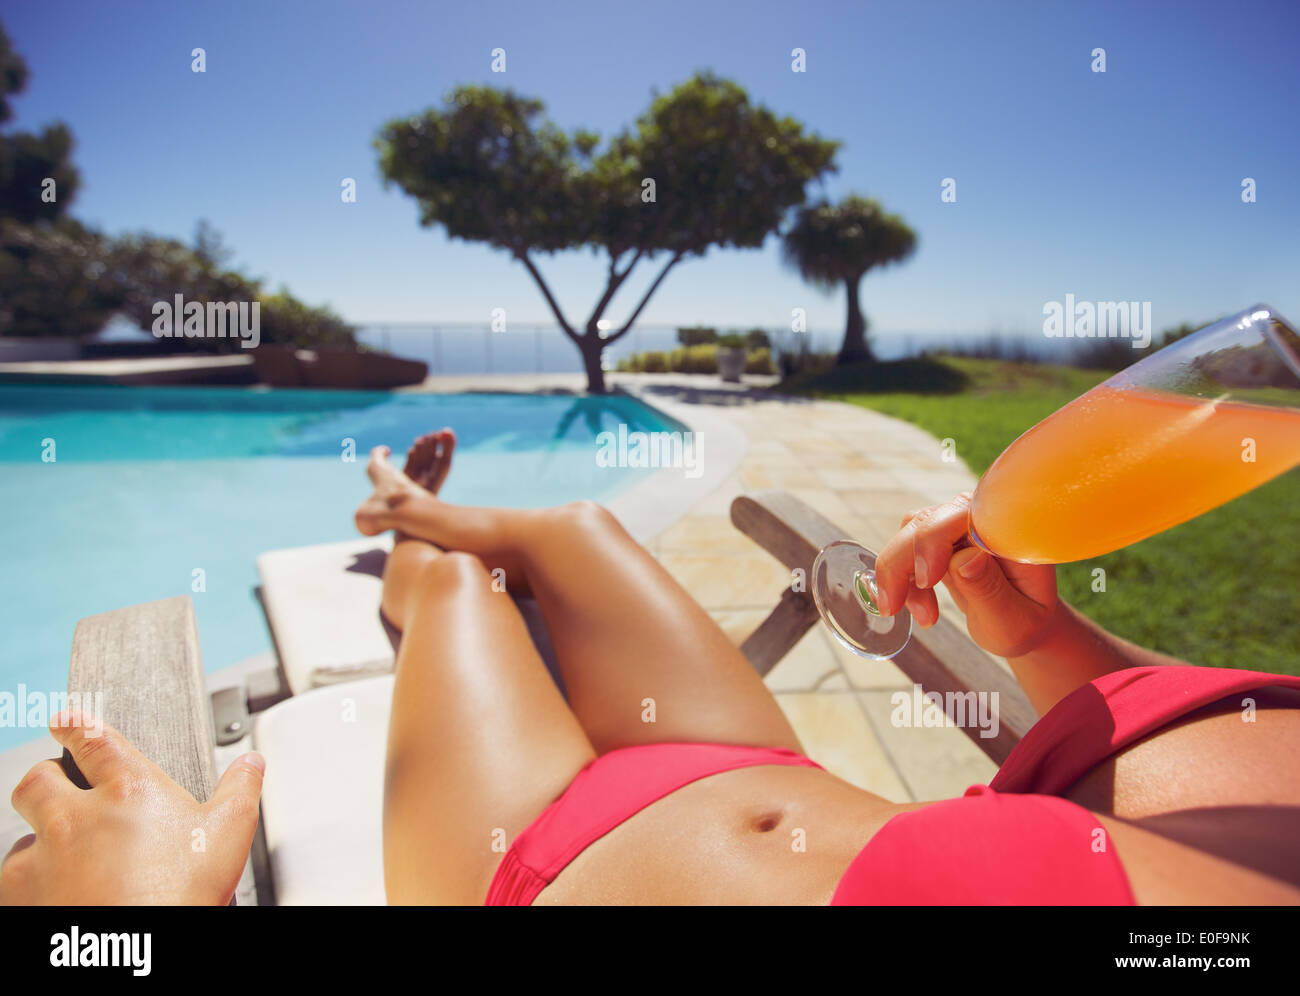 Female model in red bikini lying on a deck chair drinking a juice on a sunny day by swimming pool. Young woman sunbathing. - Stock Image